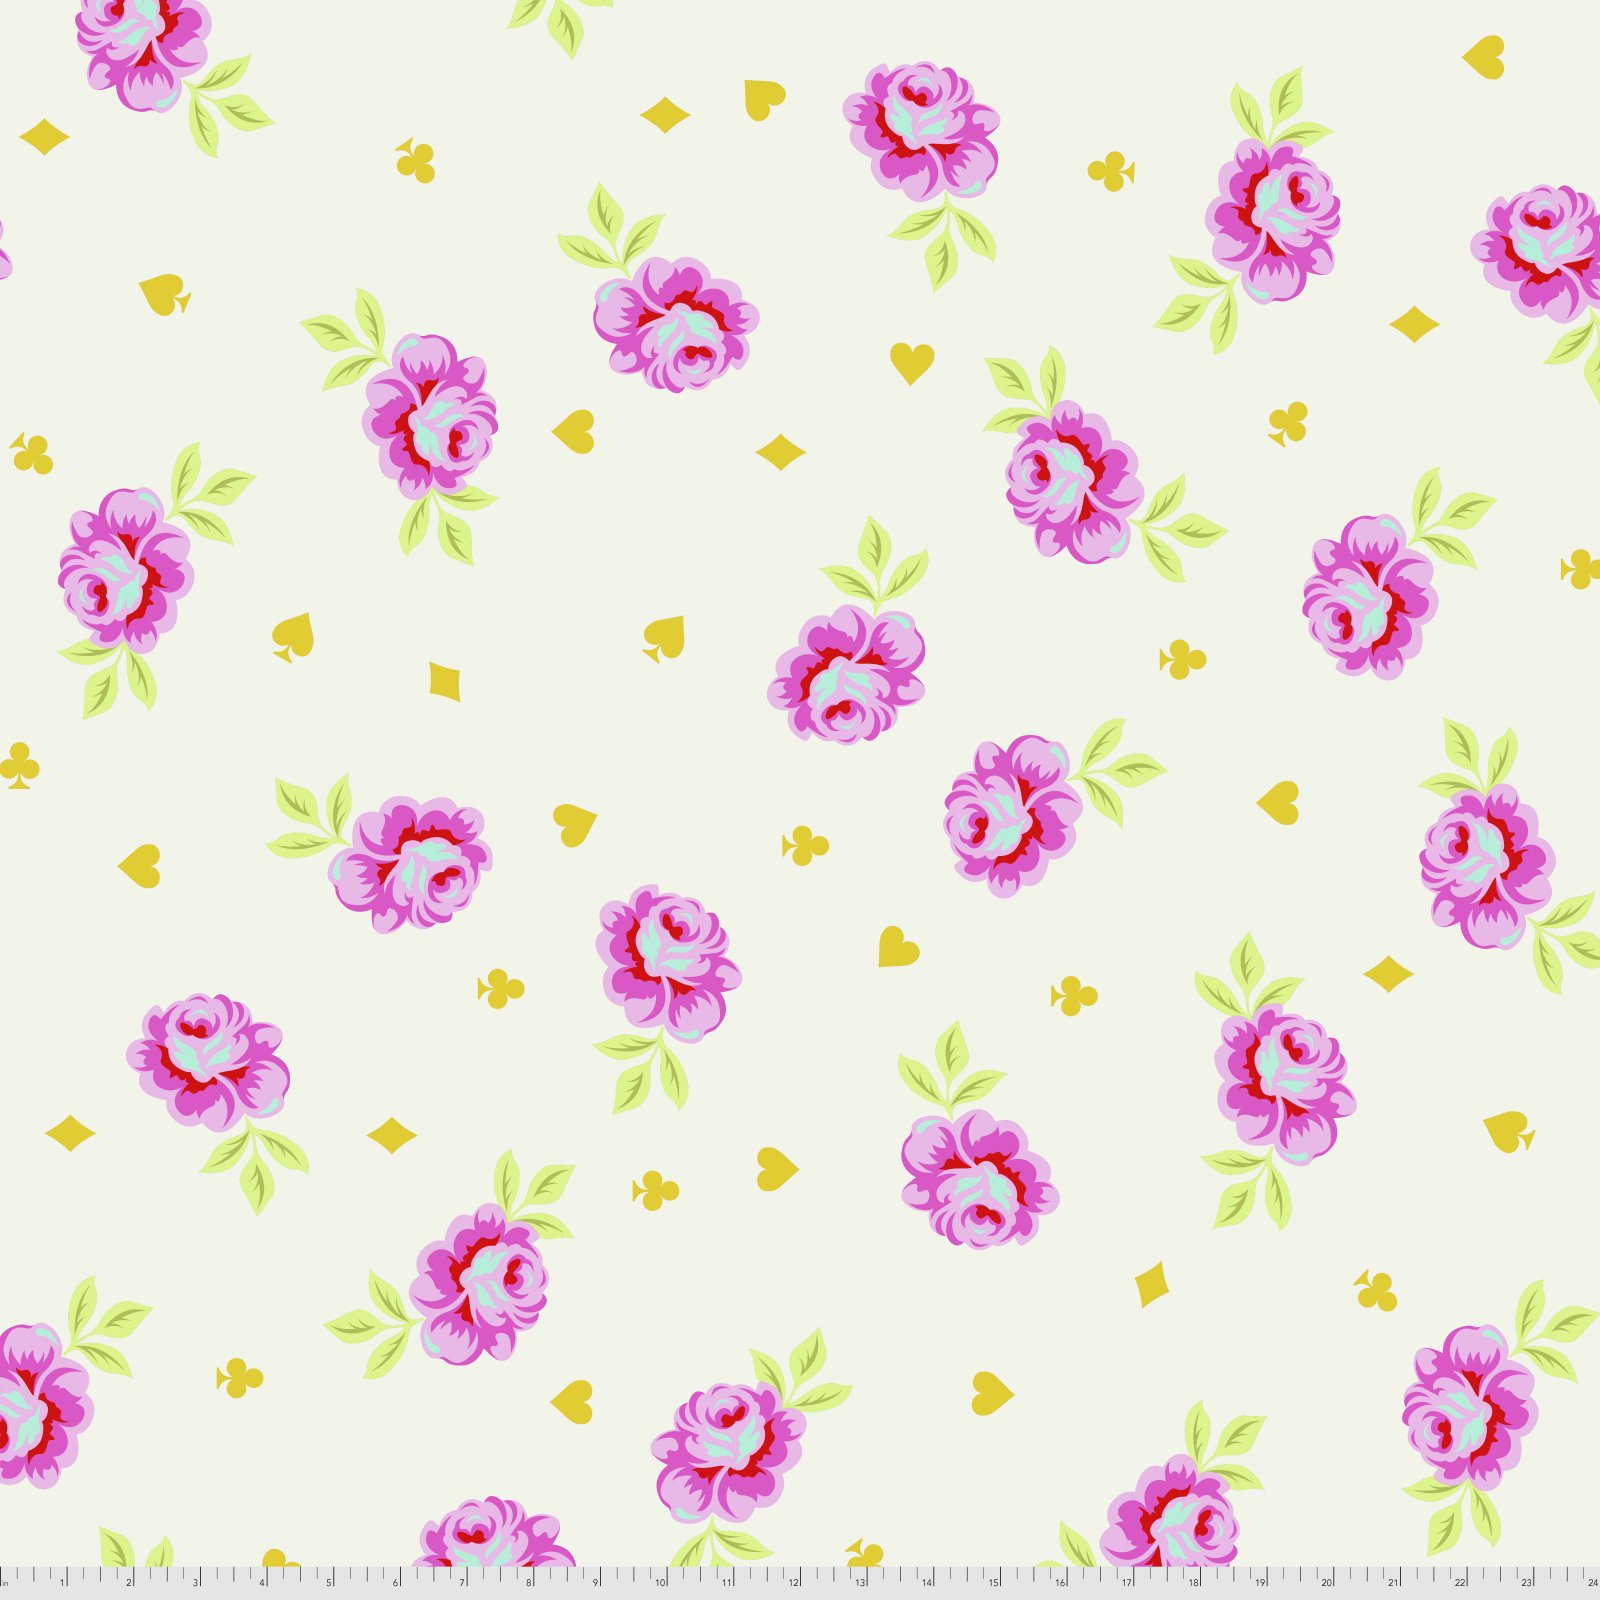 108 Wide Backing Fabric Curiouser & Curiouser by Tula Pink - Big Buds - Wonder